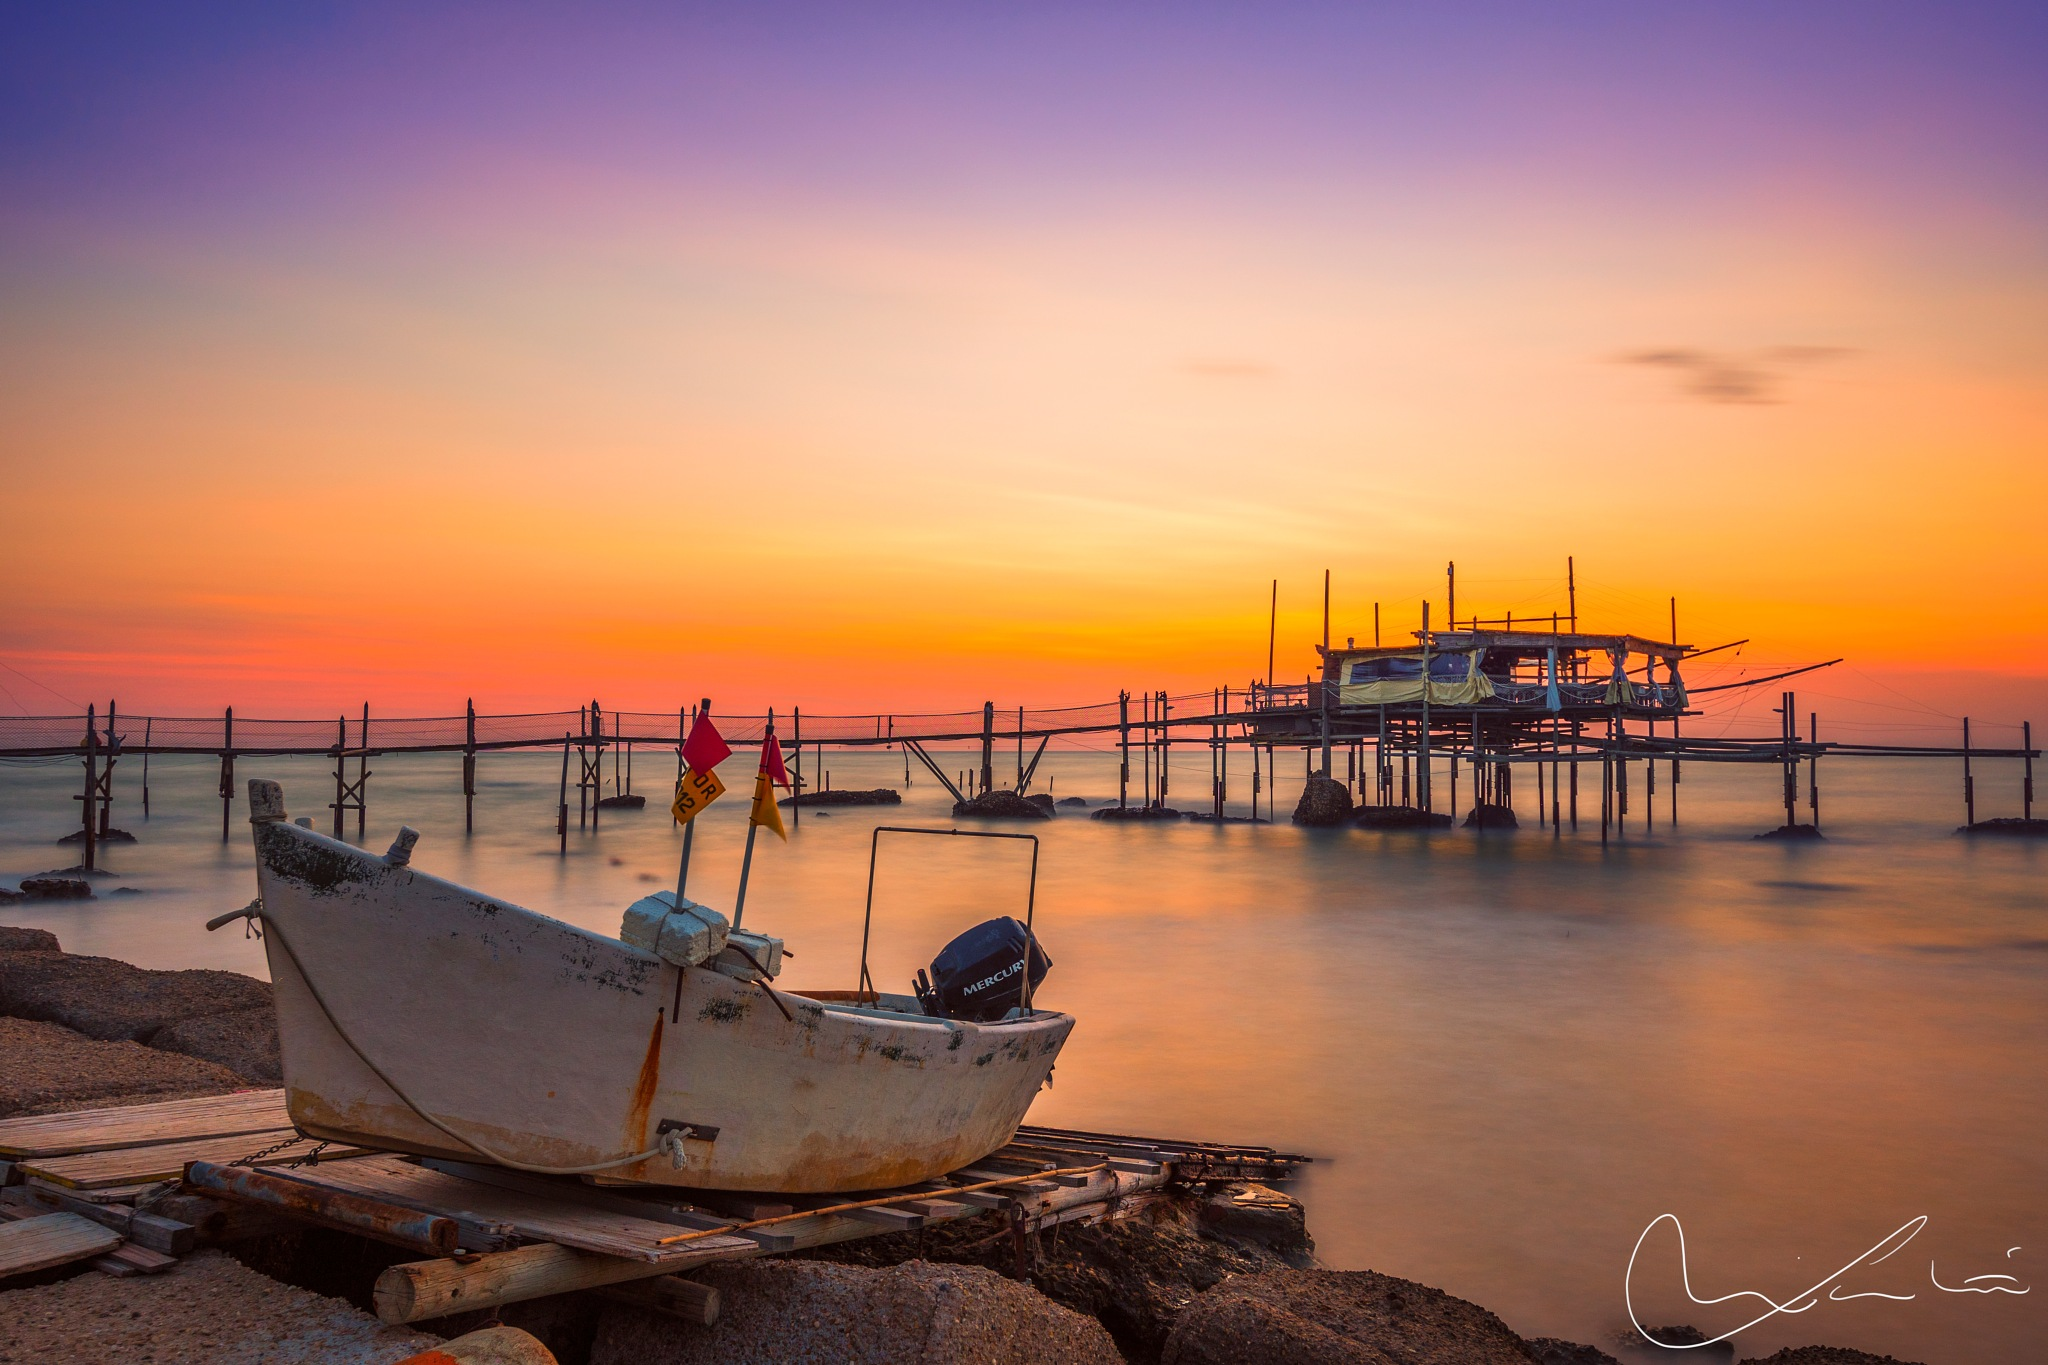 Trabocco Cungarelle by luca.nicoletti